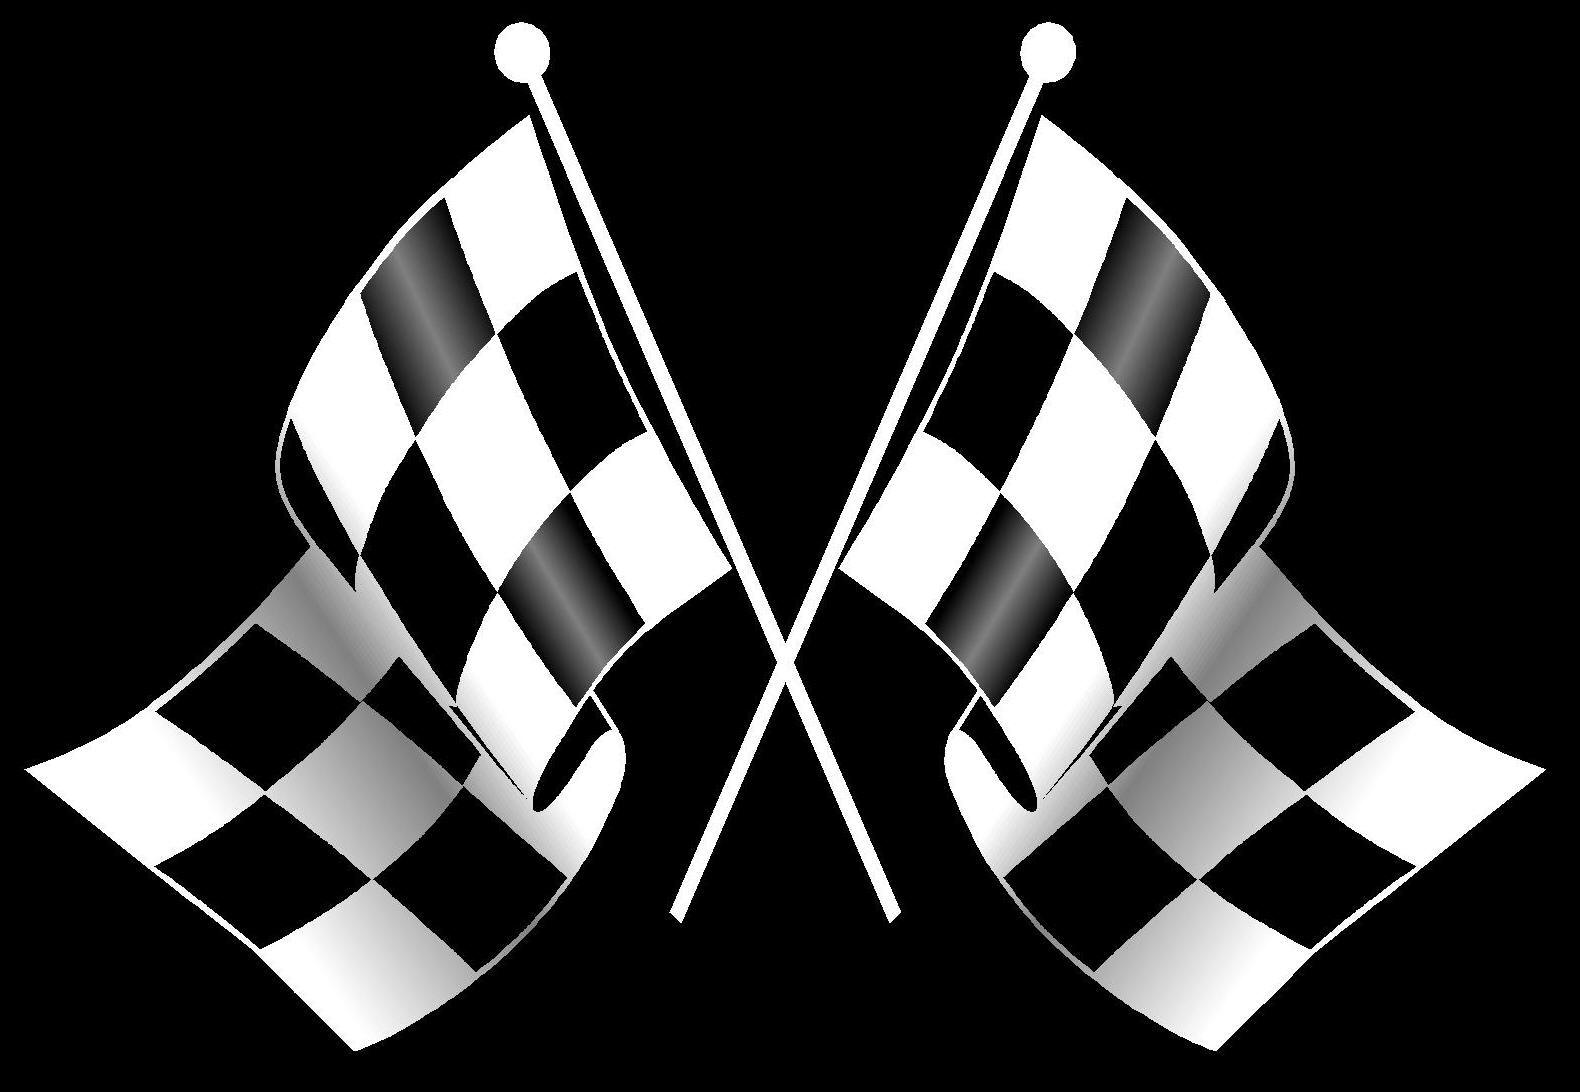 clipart racing flags - photo #17